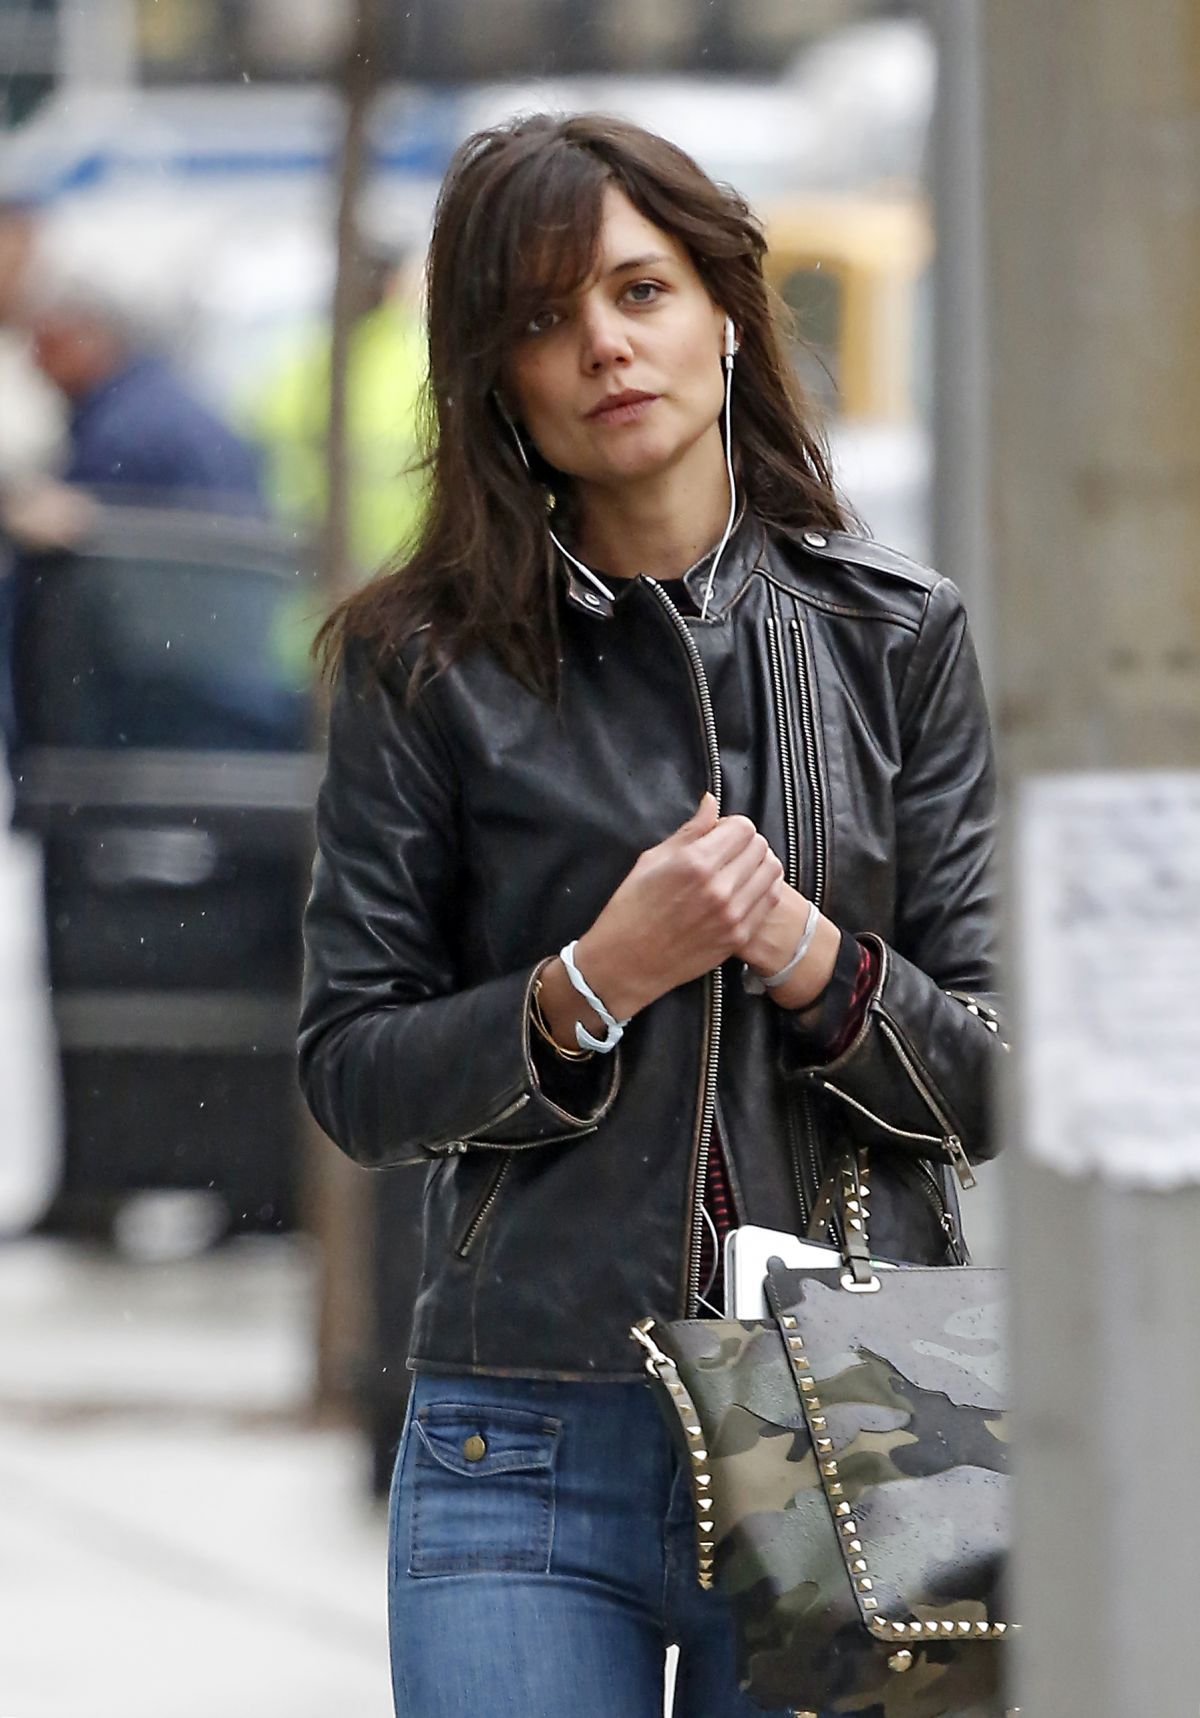 Katie Holmes Leather Jacket And Jeans Out New York Jennette Mccurdy Haircut